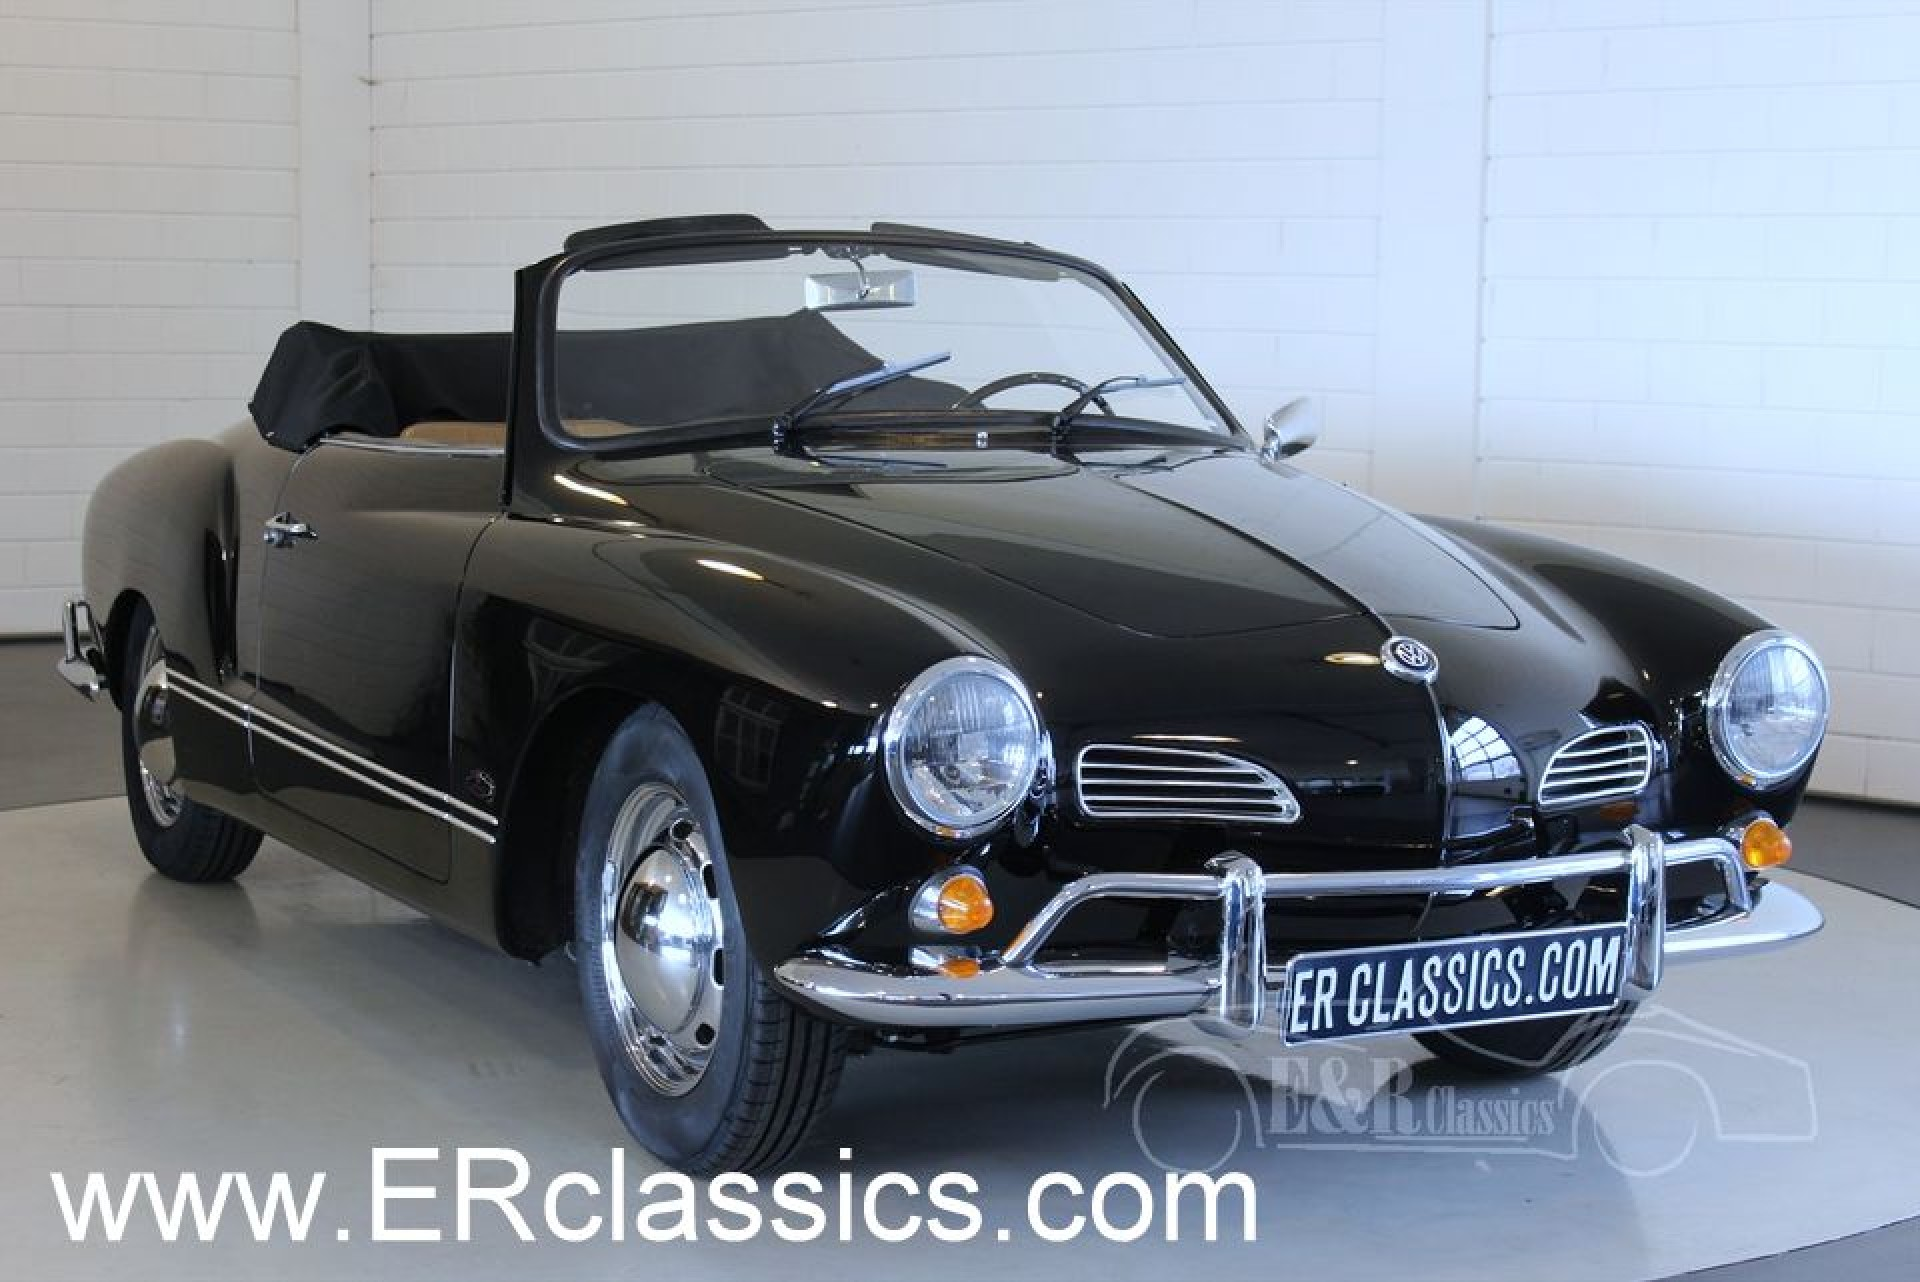 volkswagen karmann ghia 1966 vendre erclassics. Black Bedroom Furniture Sets. Home Design Ideas